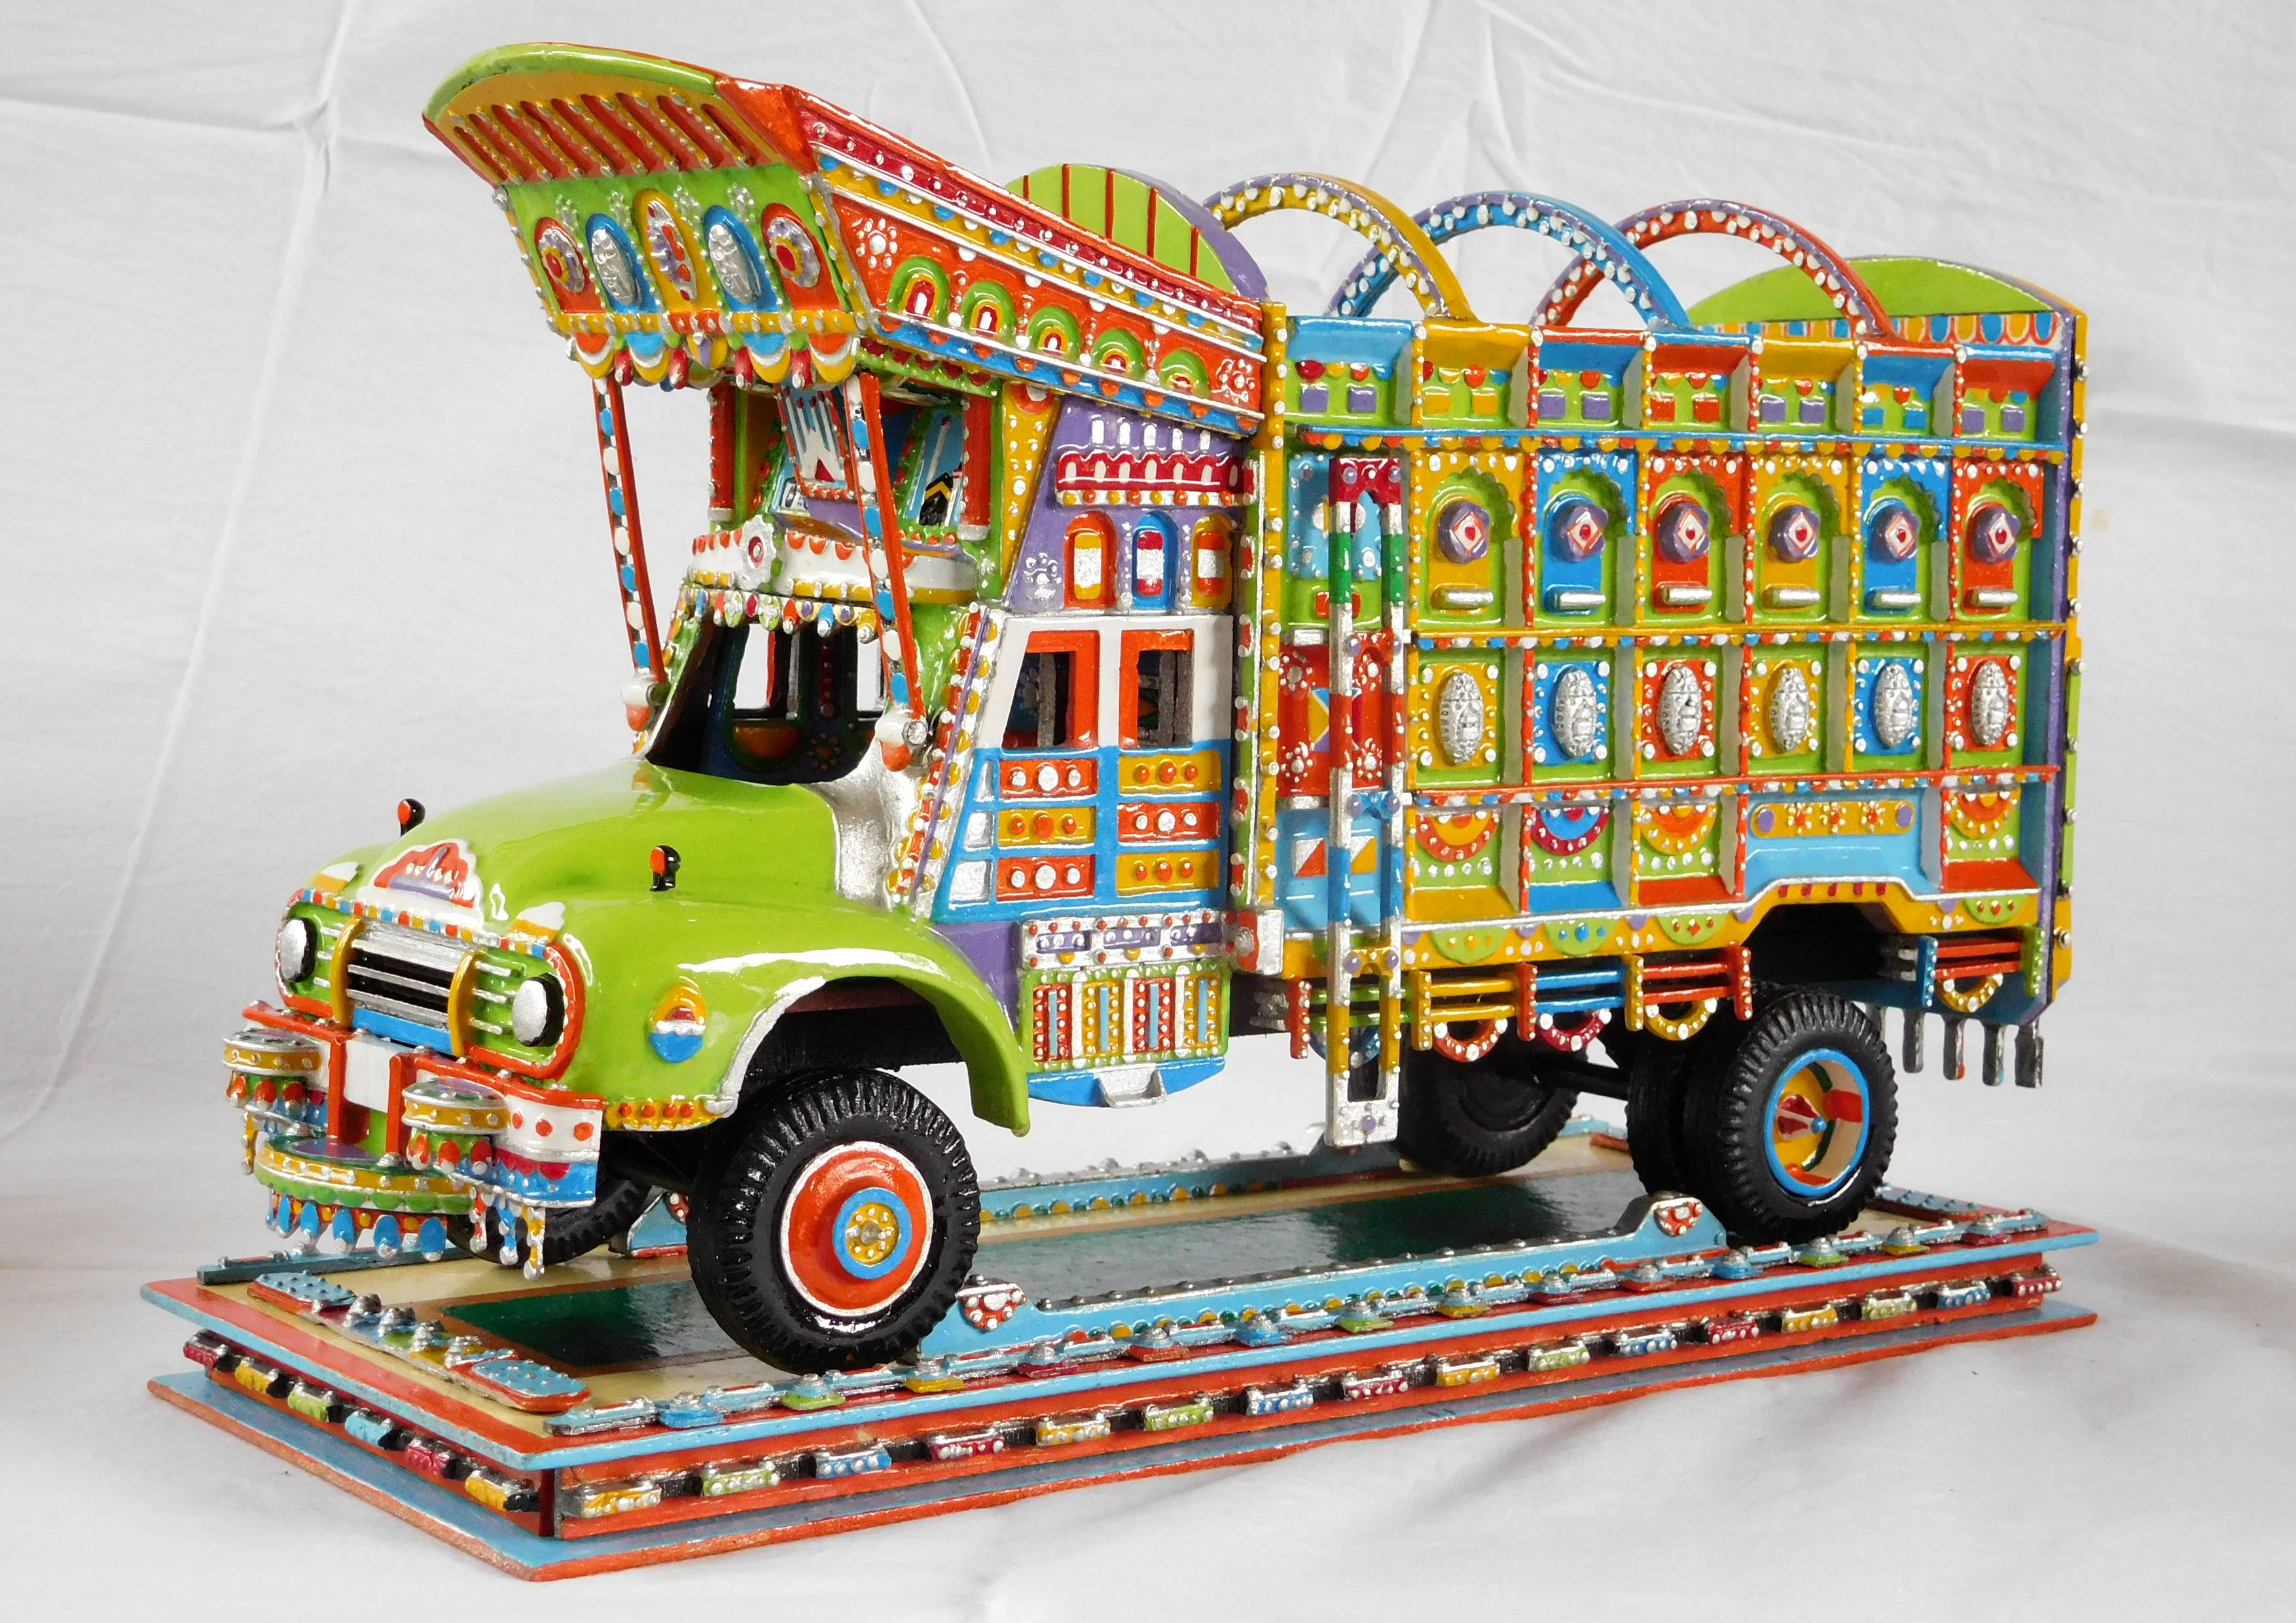 For sale at 119 on Etsy type Pakistan truck art